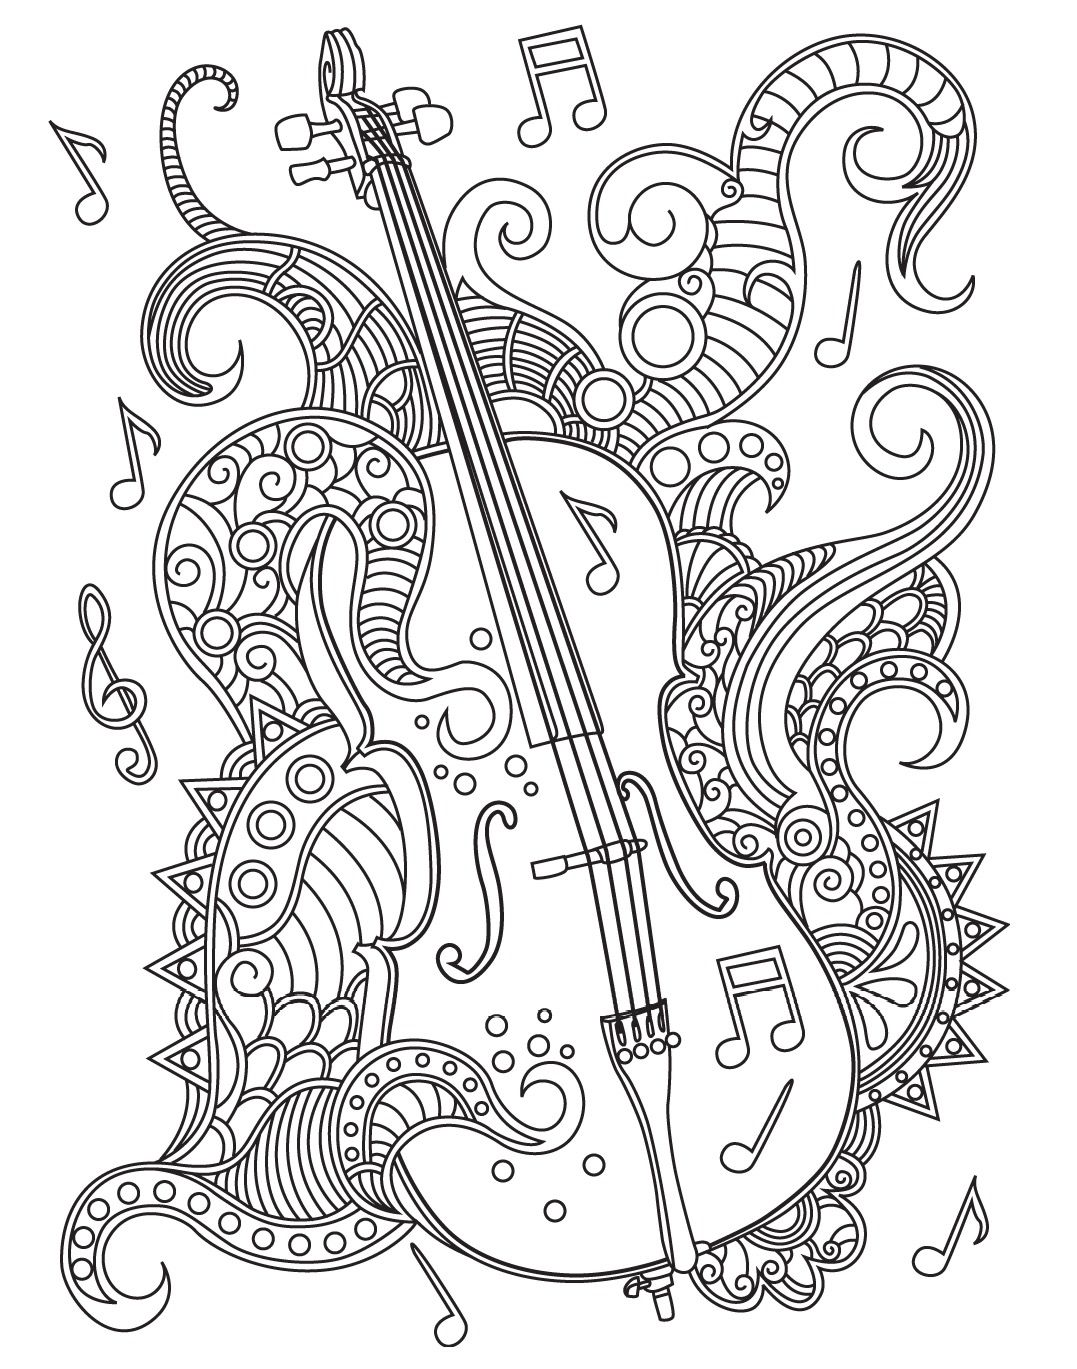 Zen coloring books for adults app - Violin Colorish Coloring Book For Adults Mandala Relax By Goodsofttech